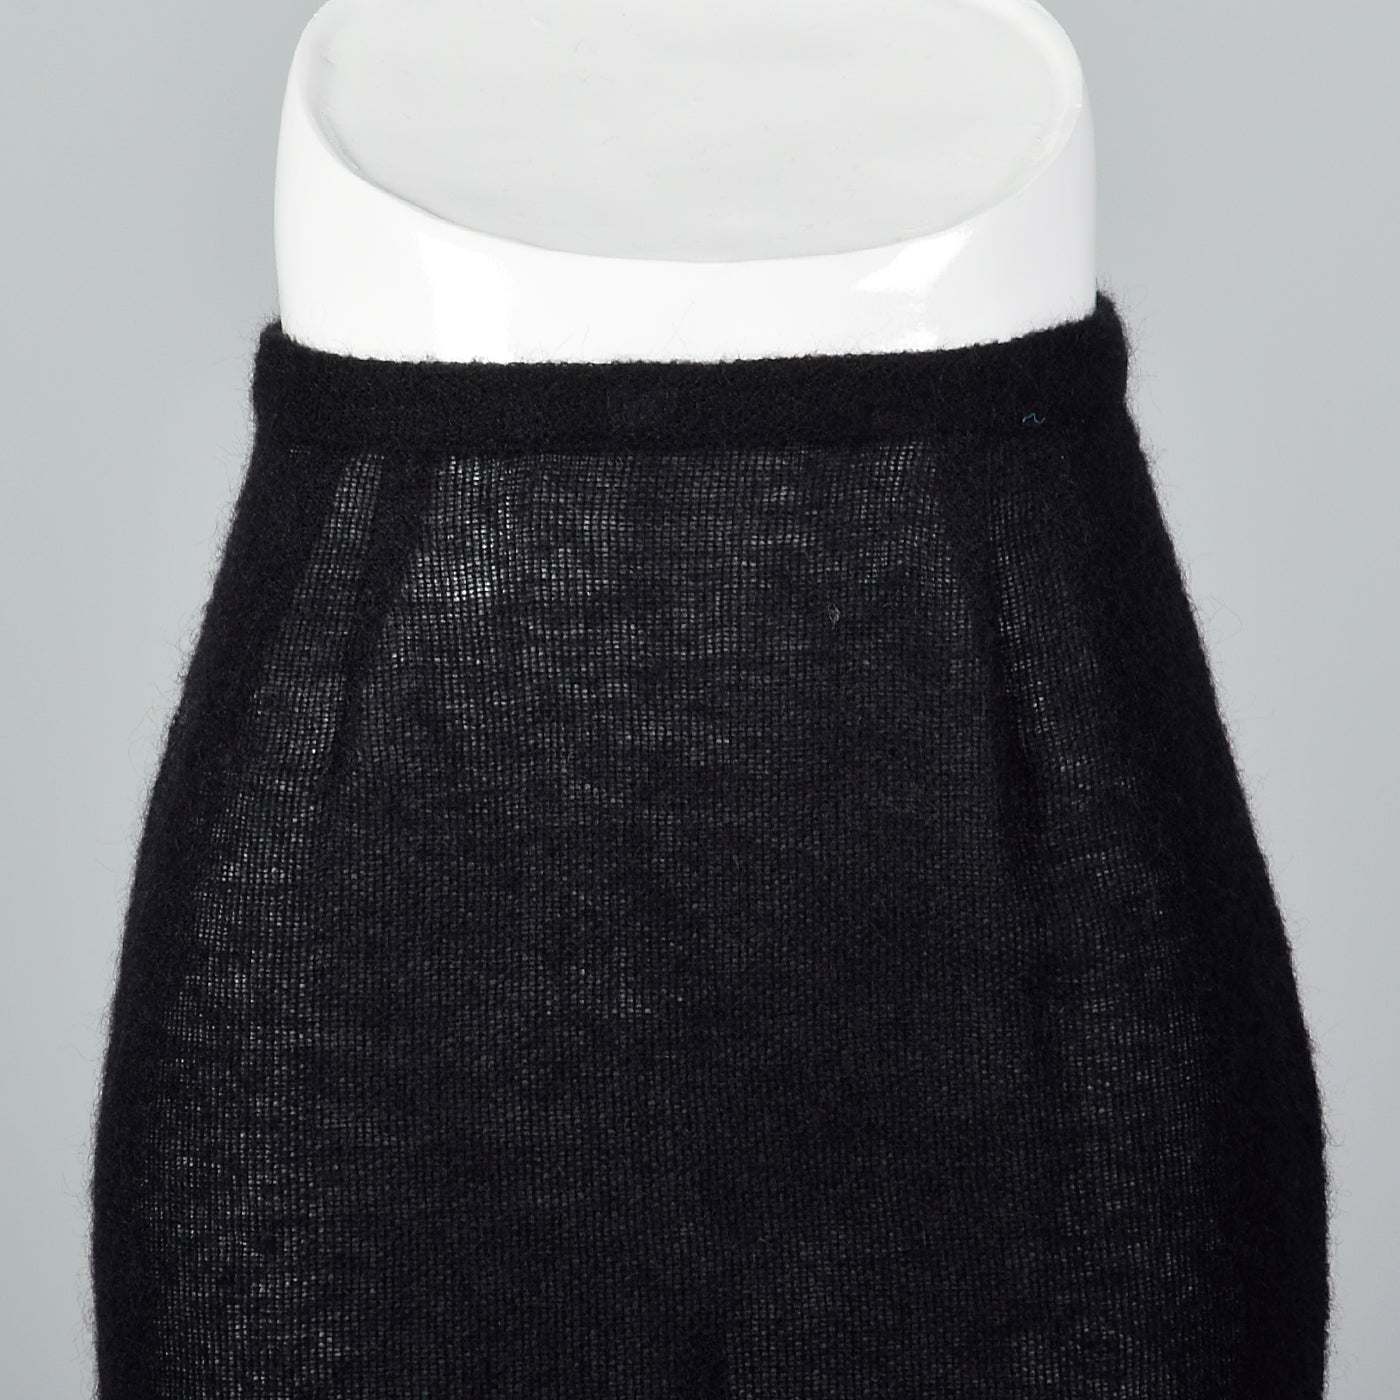 1990s Sheer Knit Wool Pencil Skirt